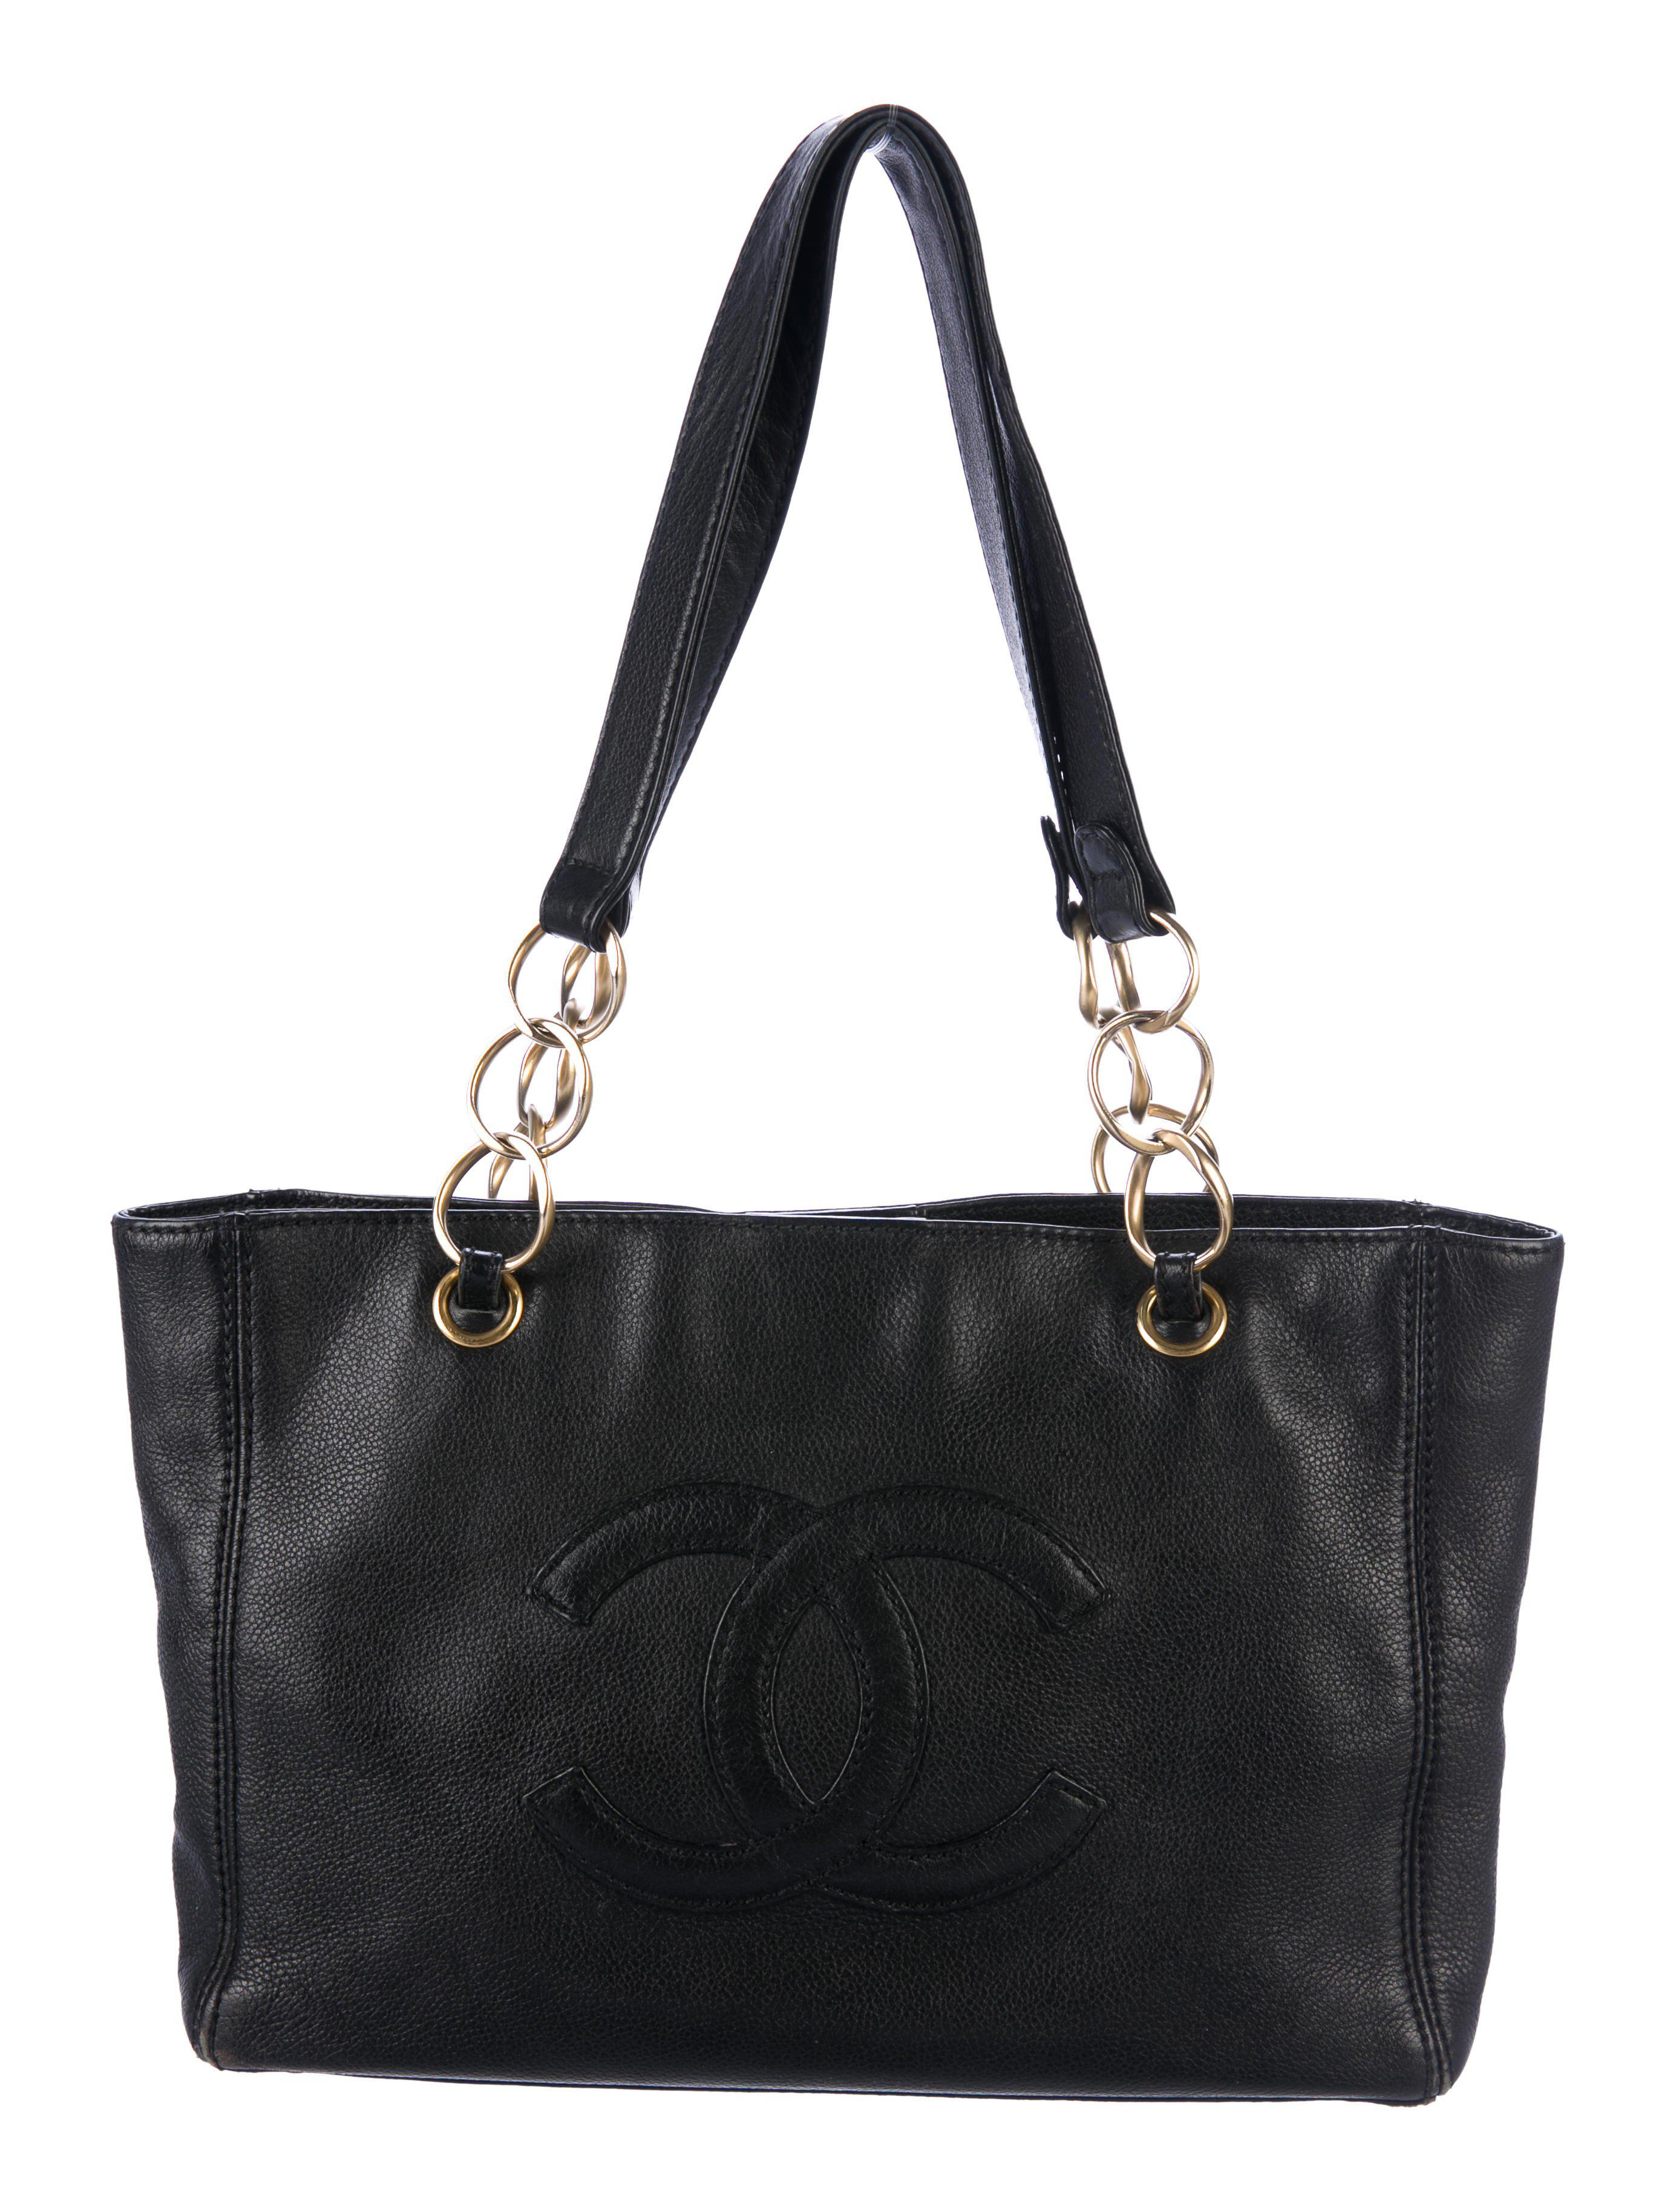 c0d0b5a492a4 Lyst - Chanel Leather Cc Tote Black in Metallic